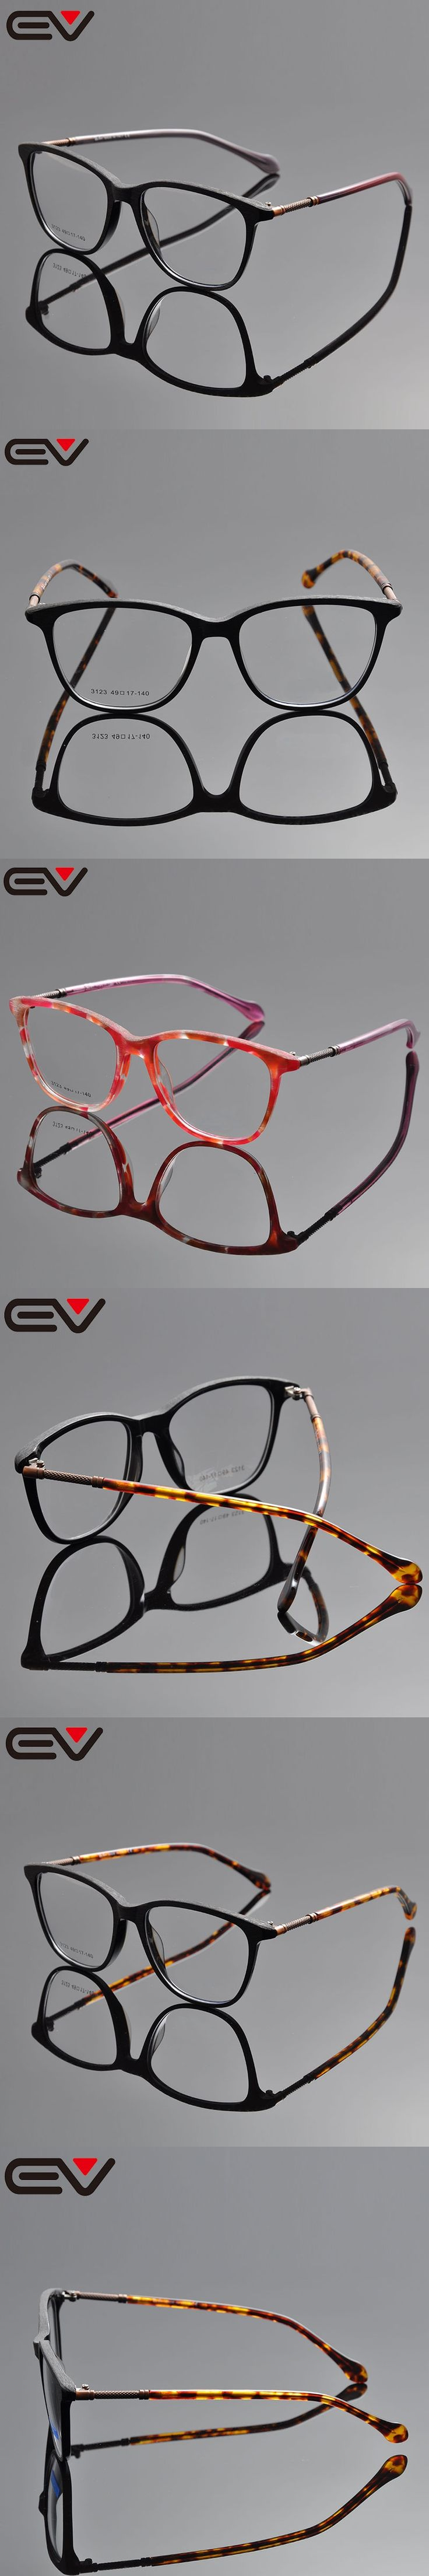 Fashionable eyeglass frame eyewear buffalo horn glasses oculos eye glasses frames for men monturas  gafas clear graduadas EV1035